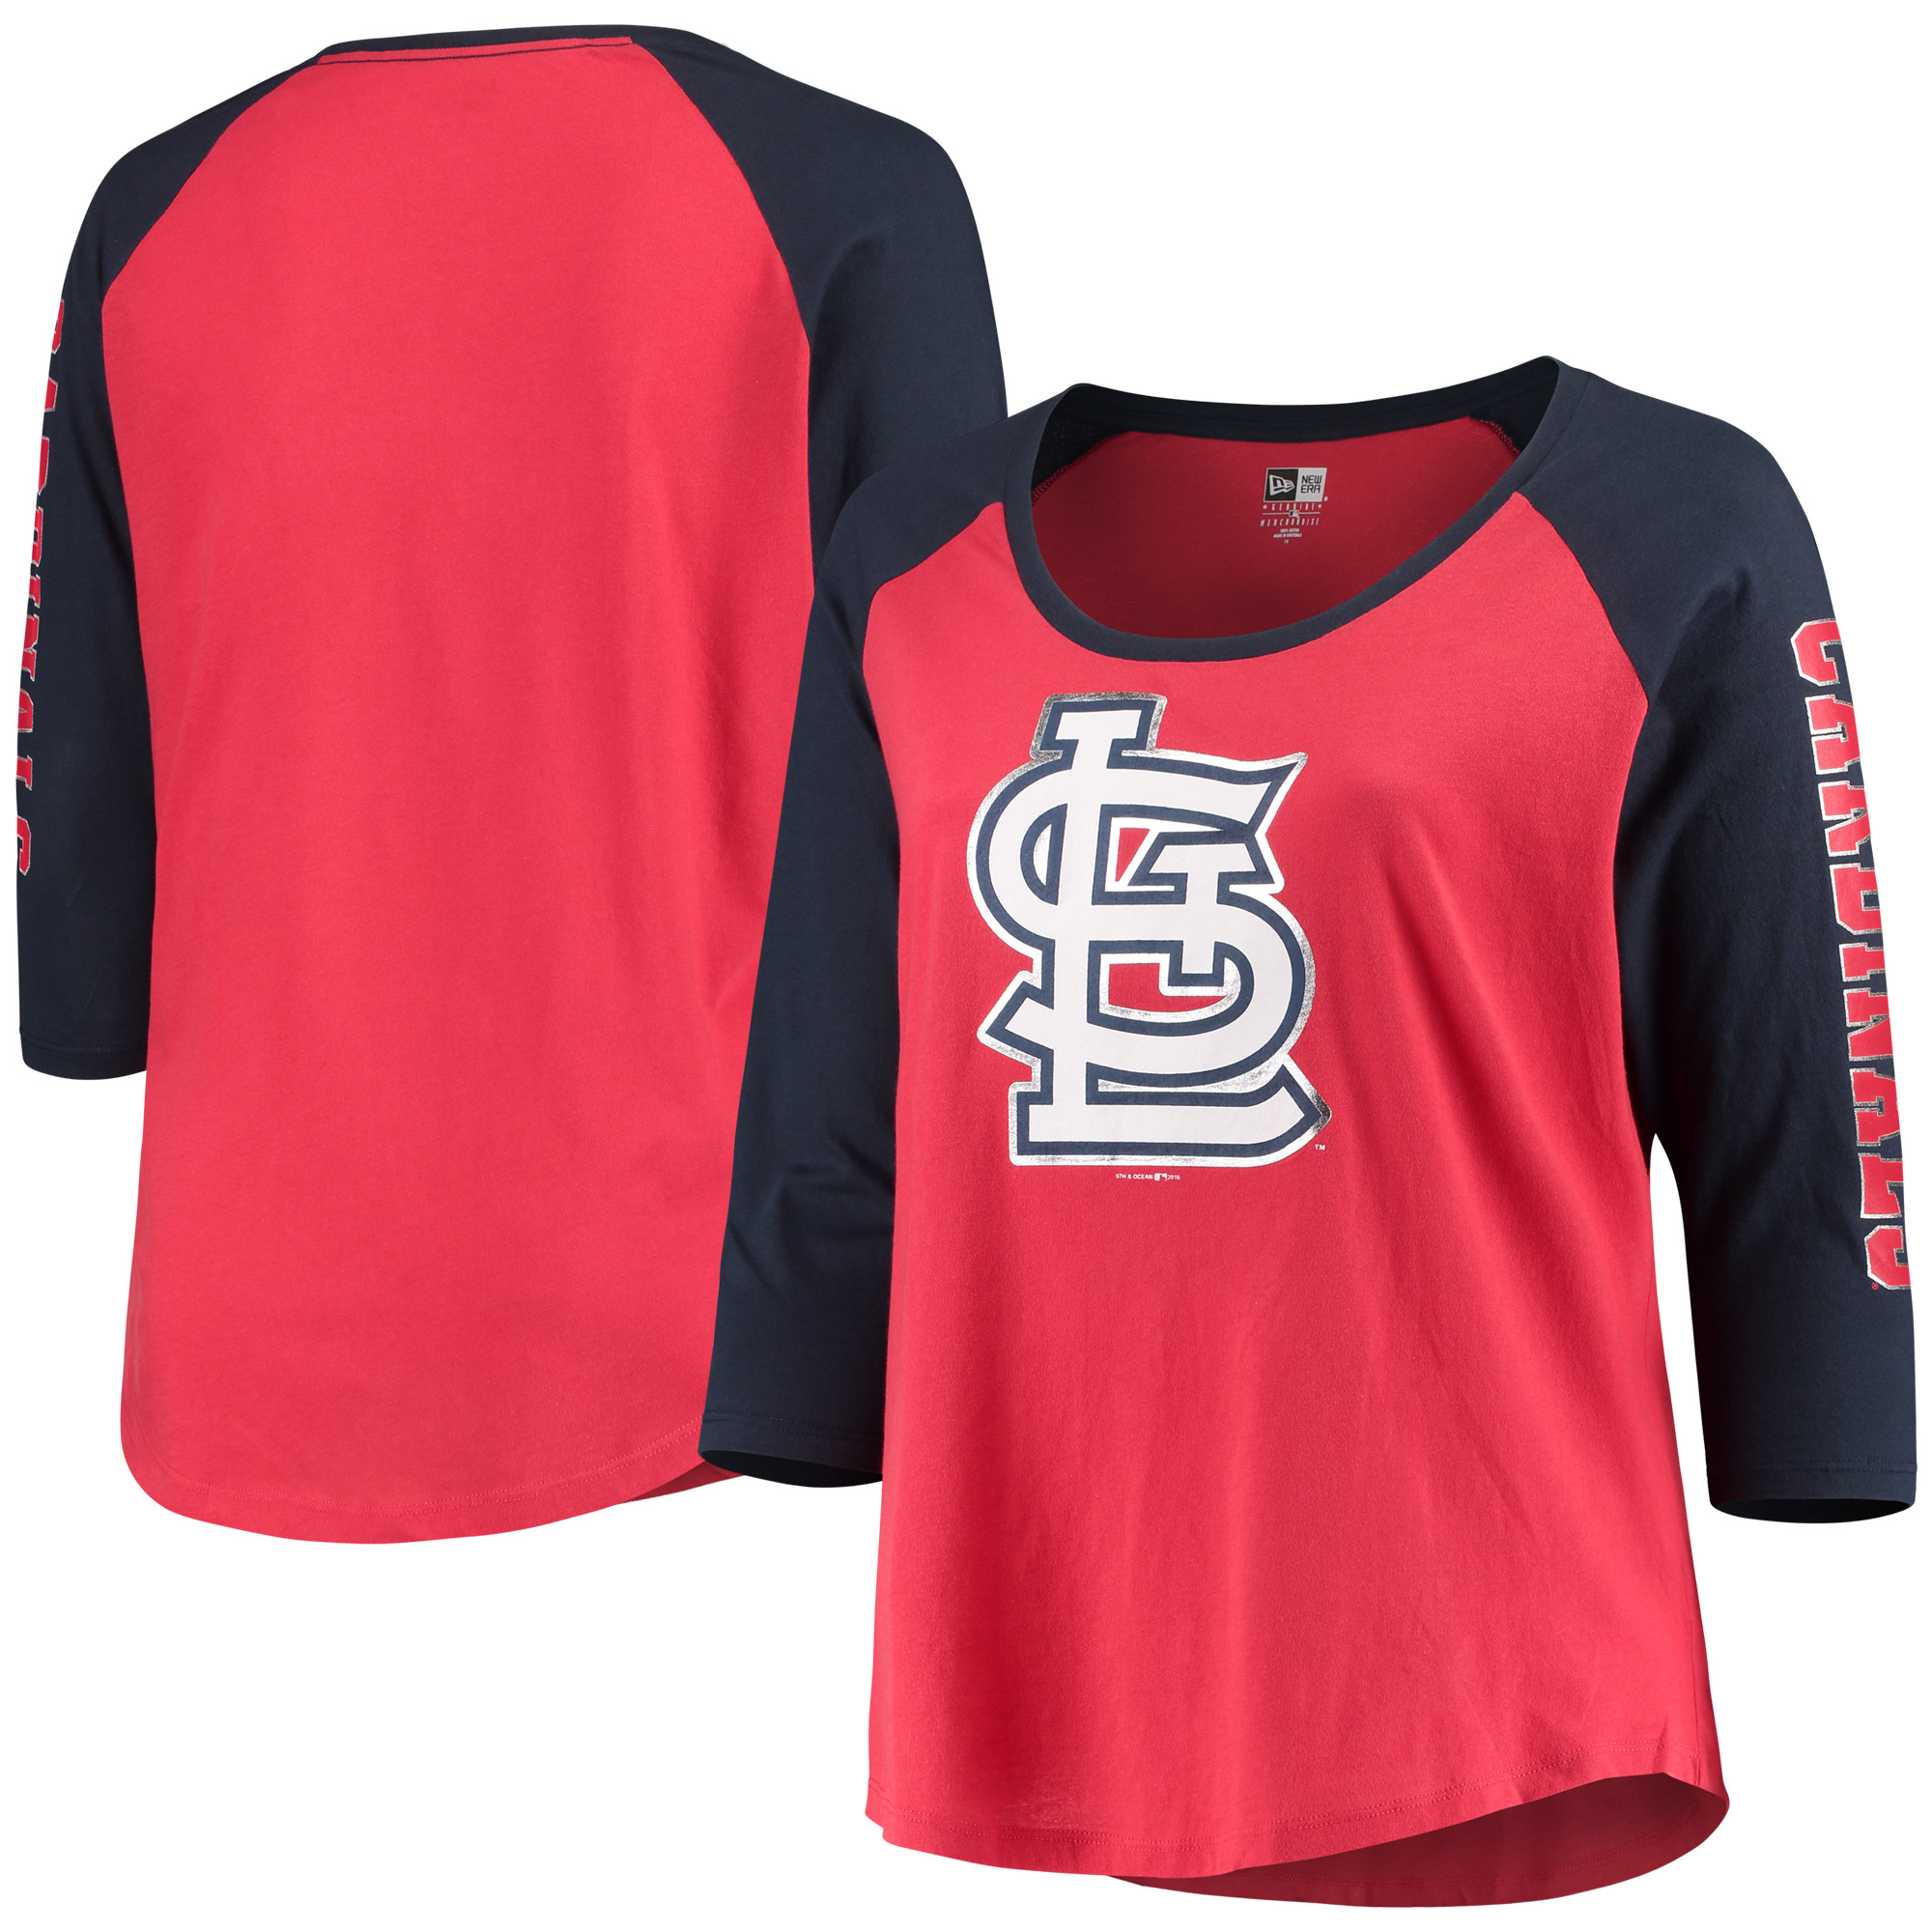 St. Louis Cardinals 5th & Ocean by New Era Women's Plus Size Foil 3/4-Sleeve Scoop Neck T-Shirt - Red/Navy